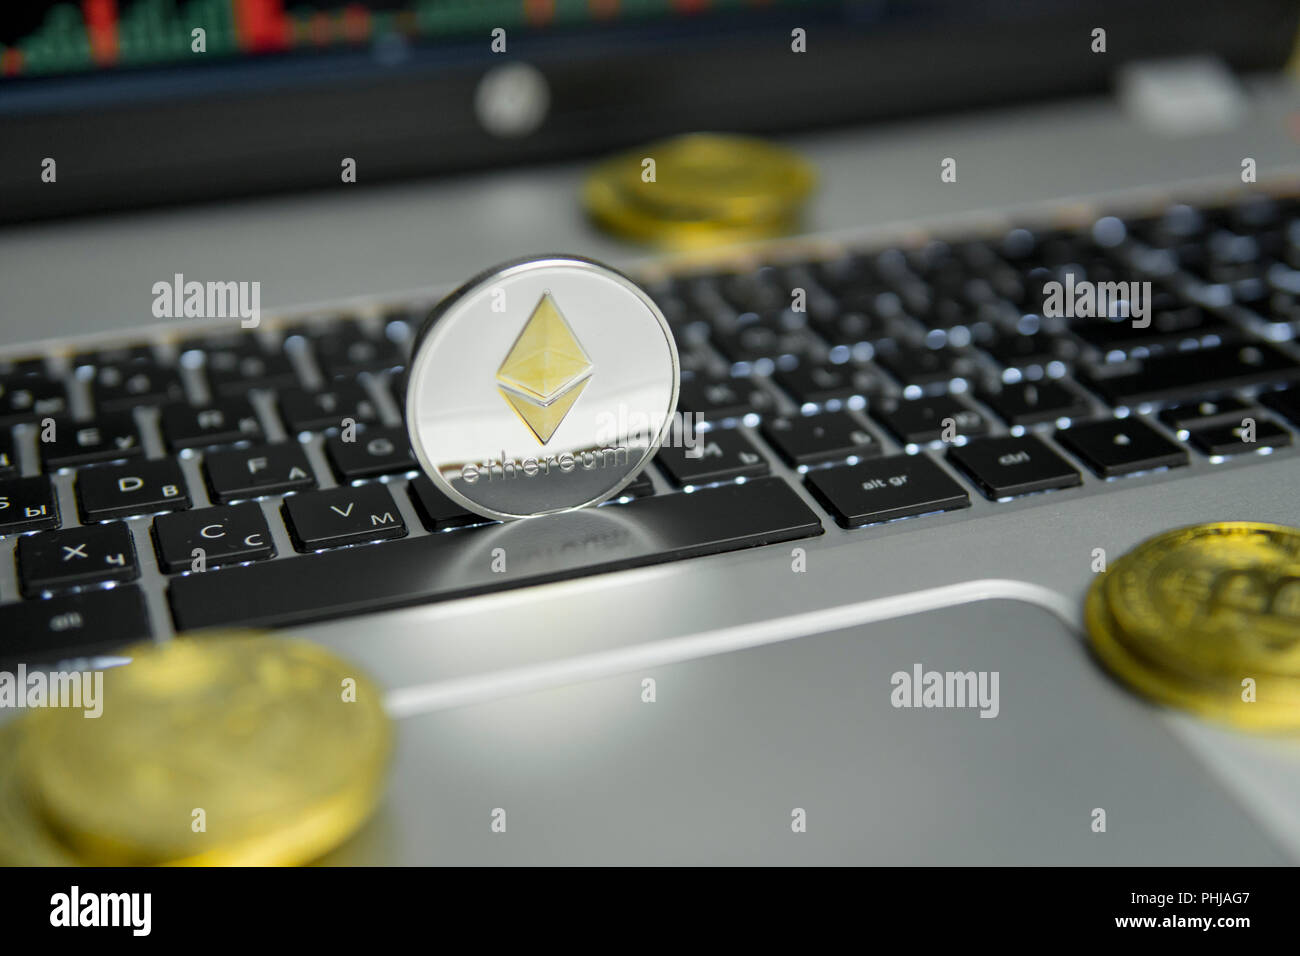 Golden Silver Ethereum Coin With Gold Coins Lying Around On A Black